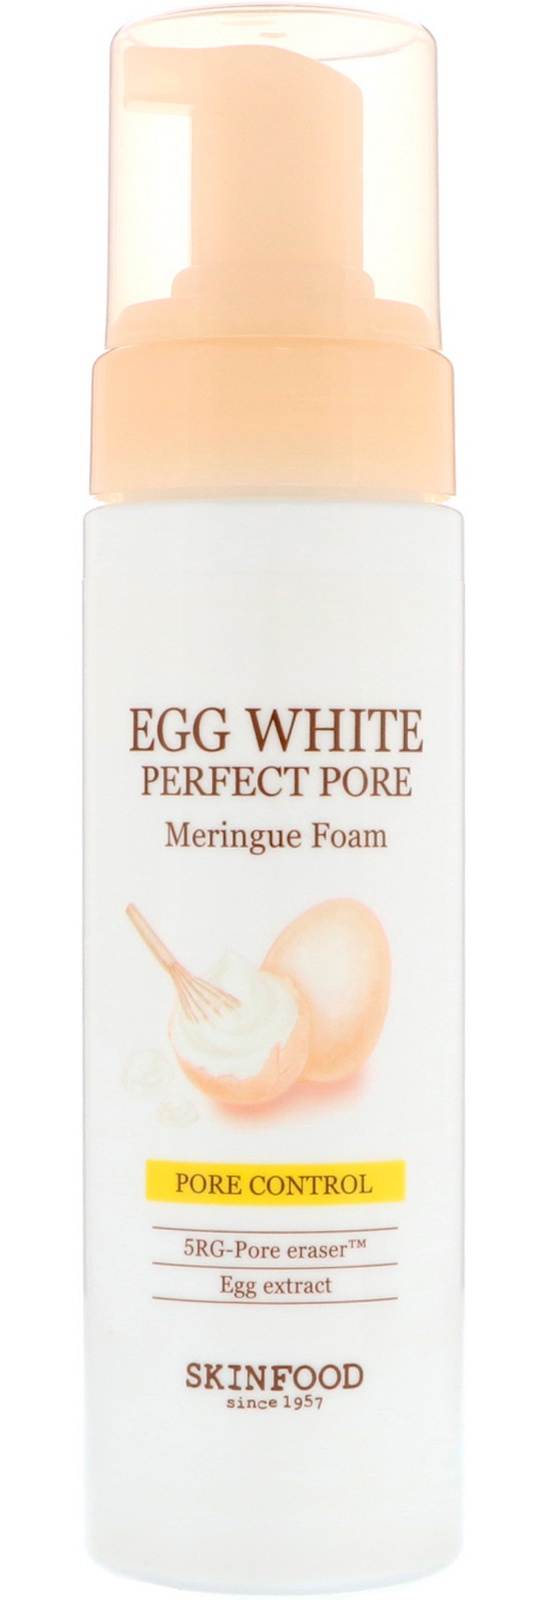 Skinfood Egg White Perfect Pore Meringue Foam